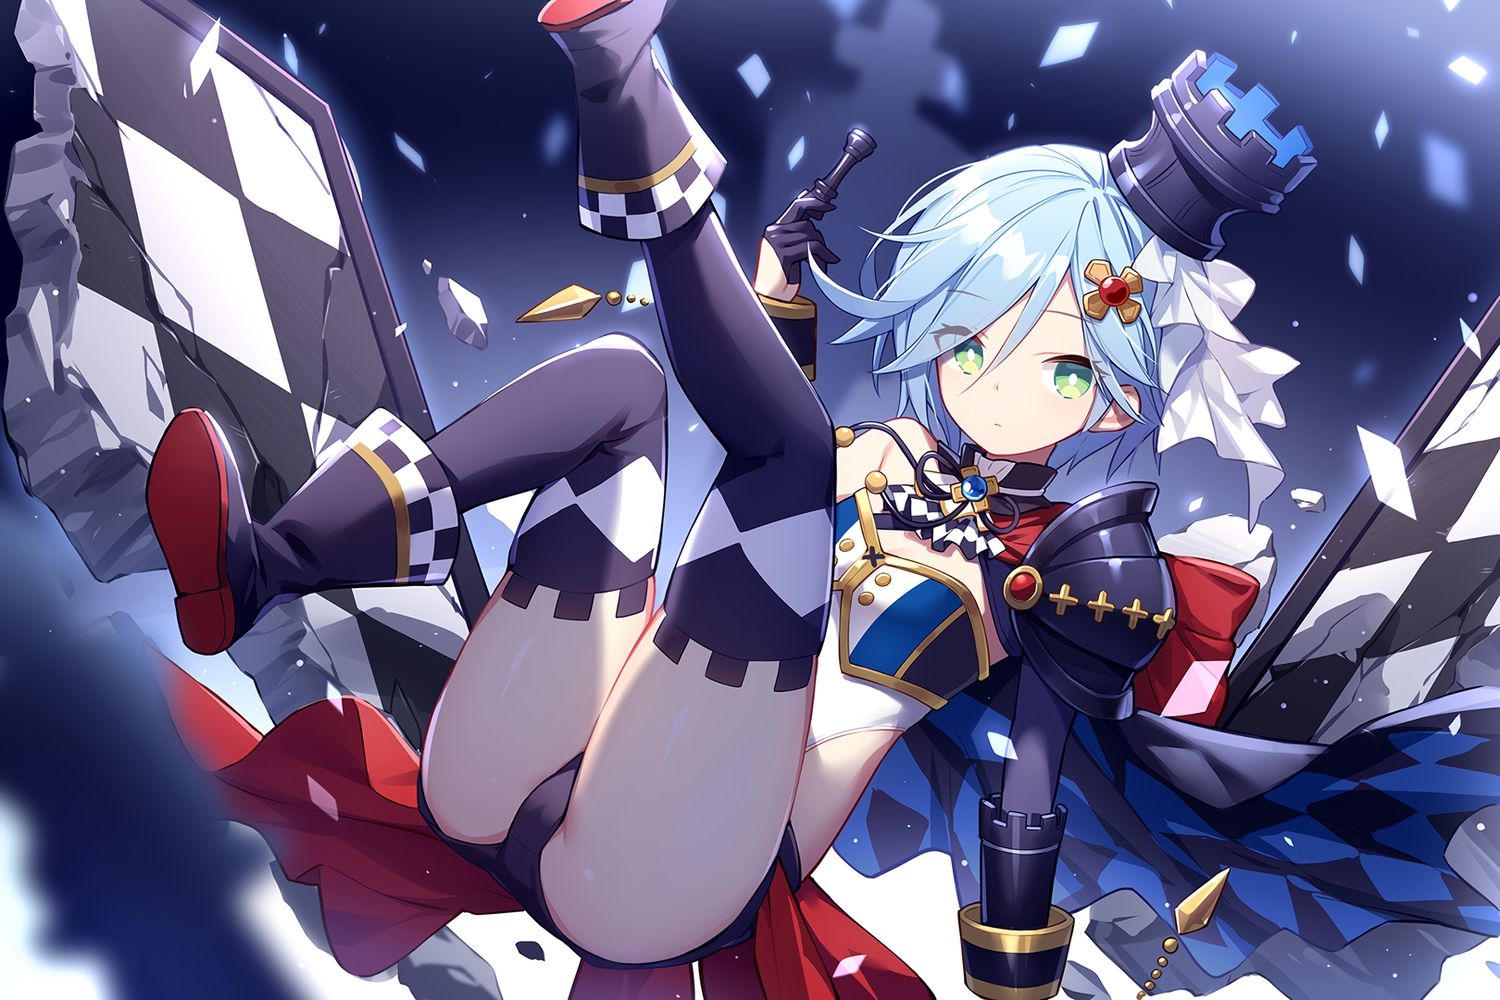 armor blue_hair cameltoe cape cornelia_(girl_cafe_gun) girl_cafe_gun_(game) gloves green_eyes kurisu_tina short_hair thighhighs